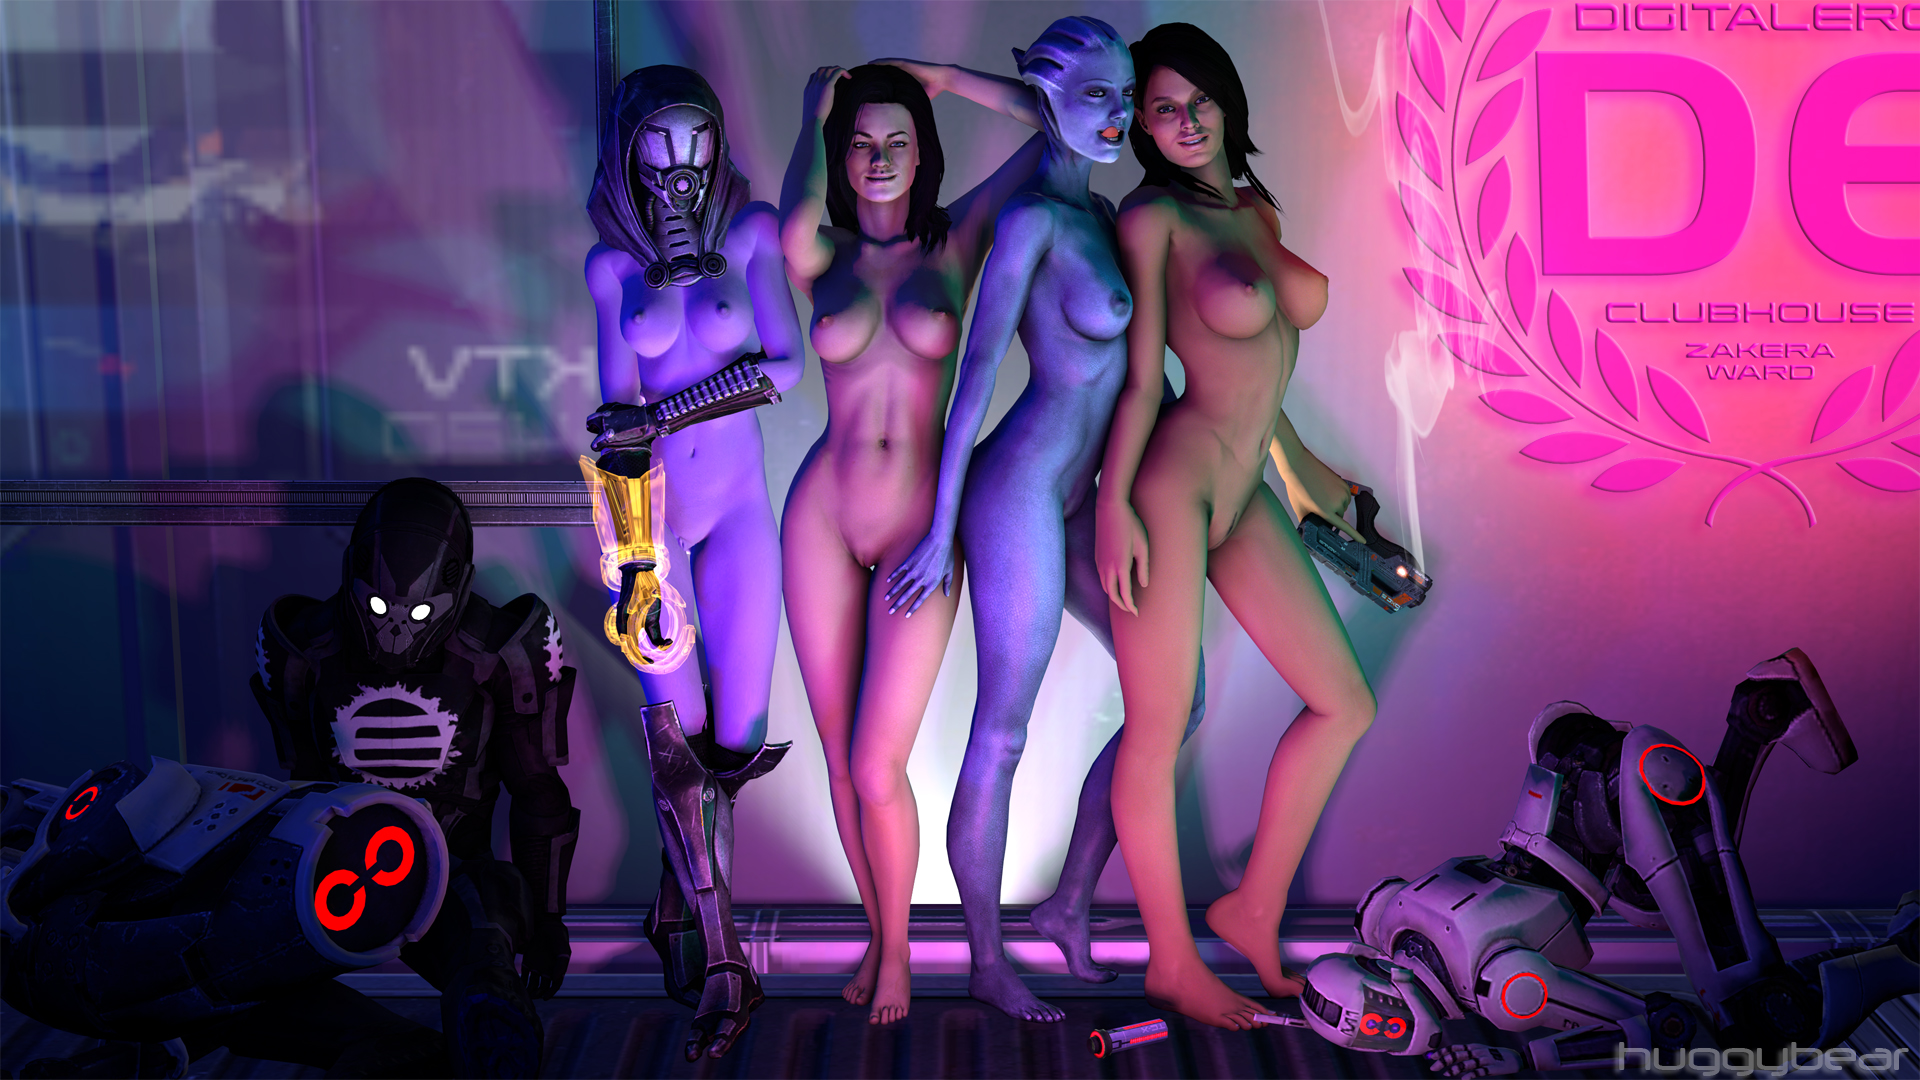 Mass effect erotic smut video